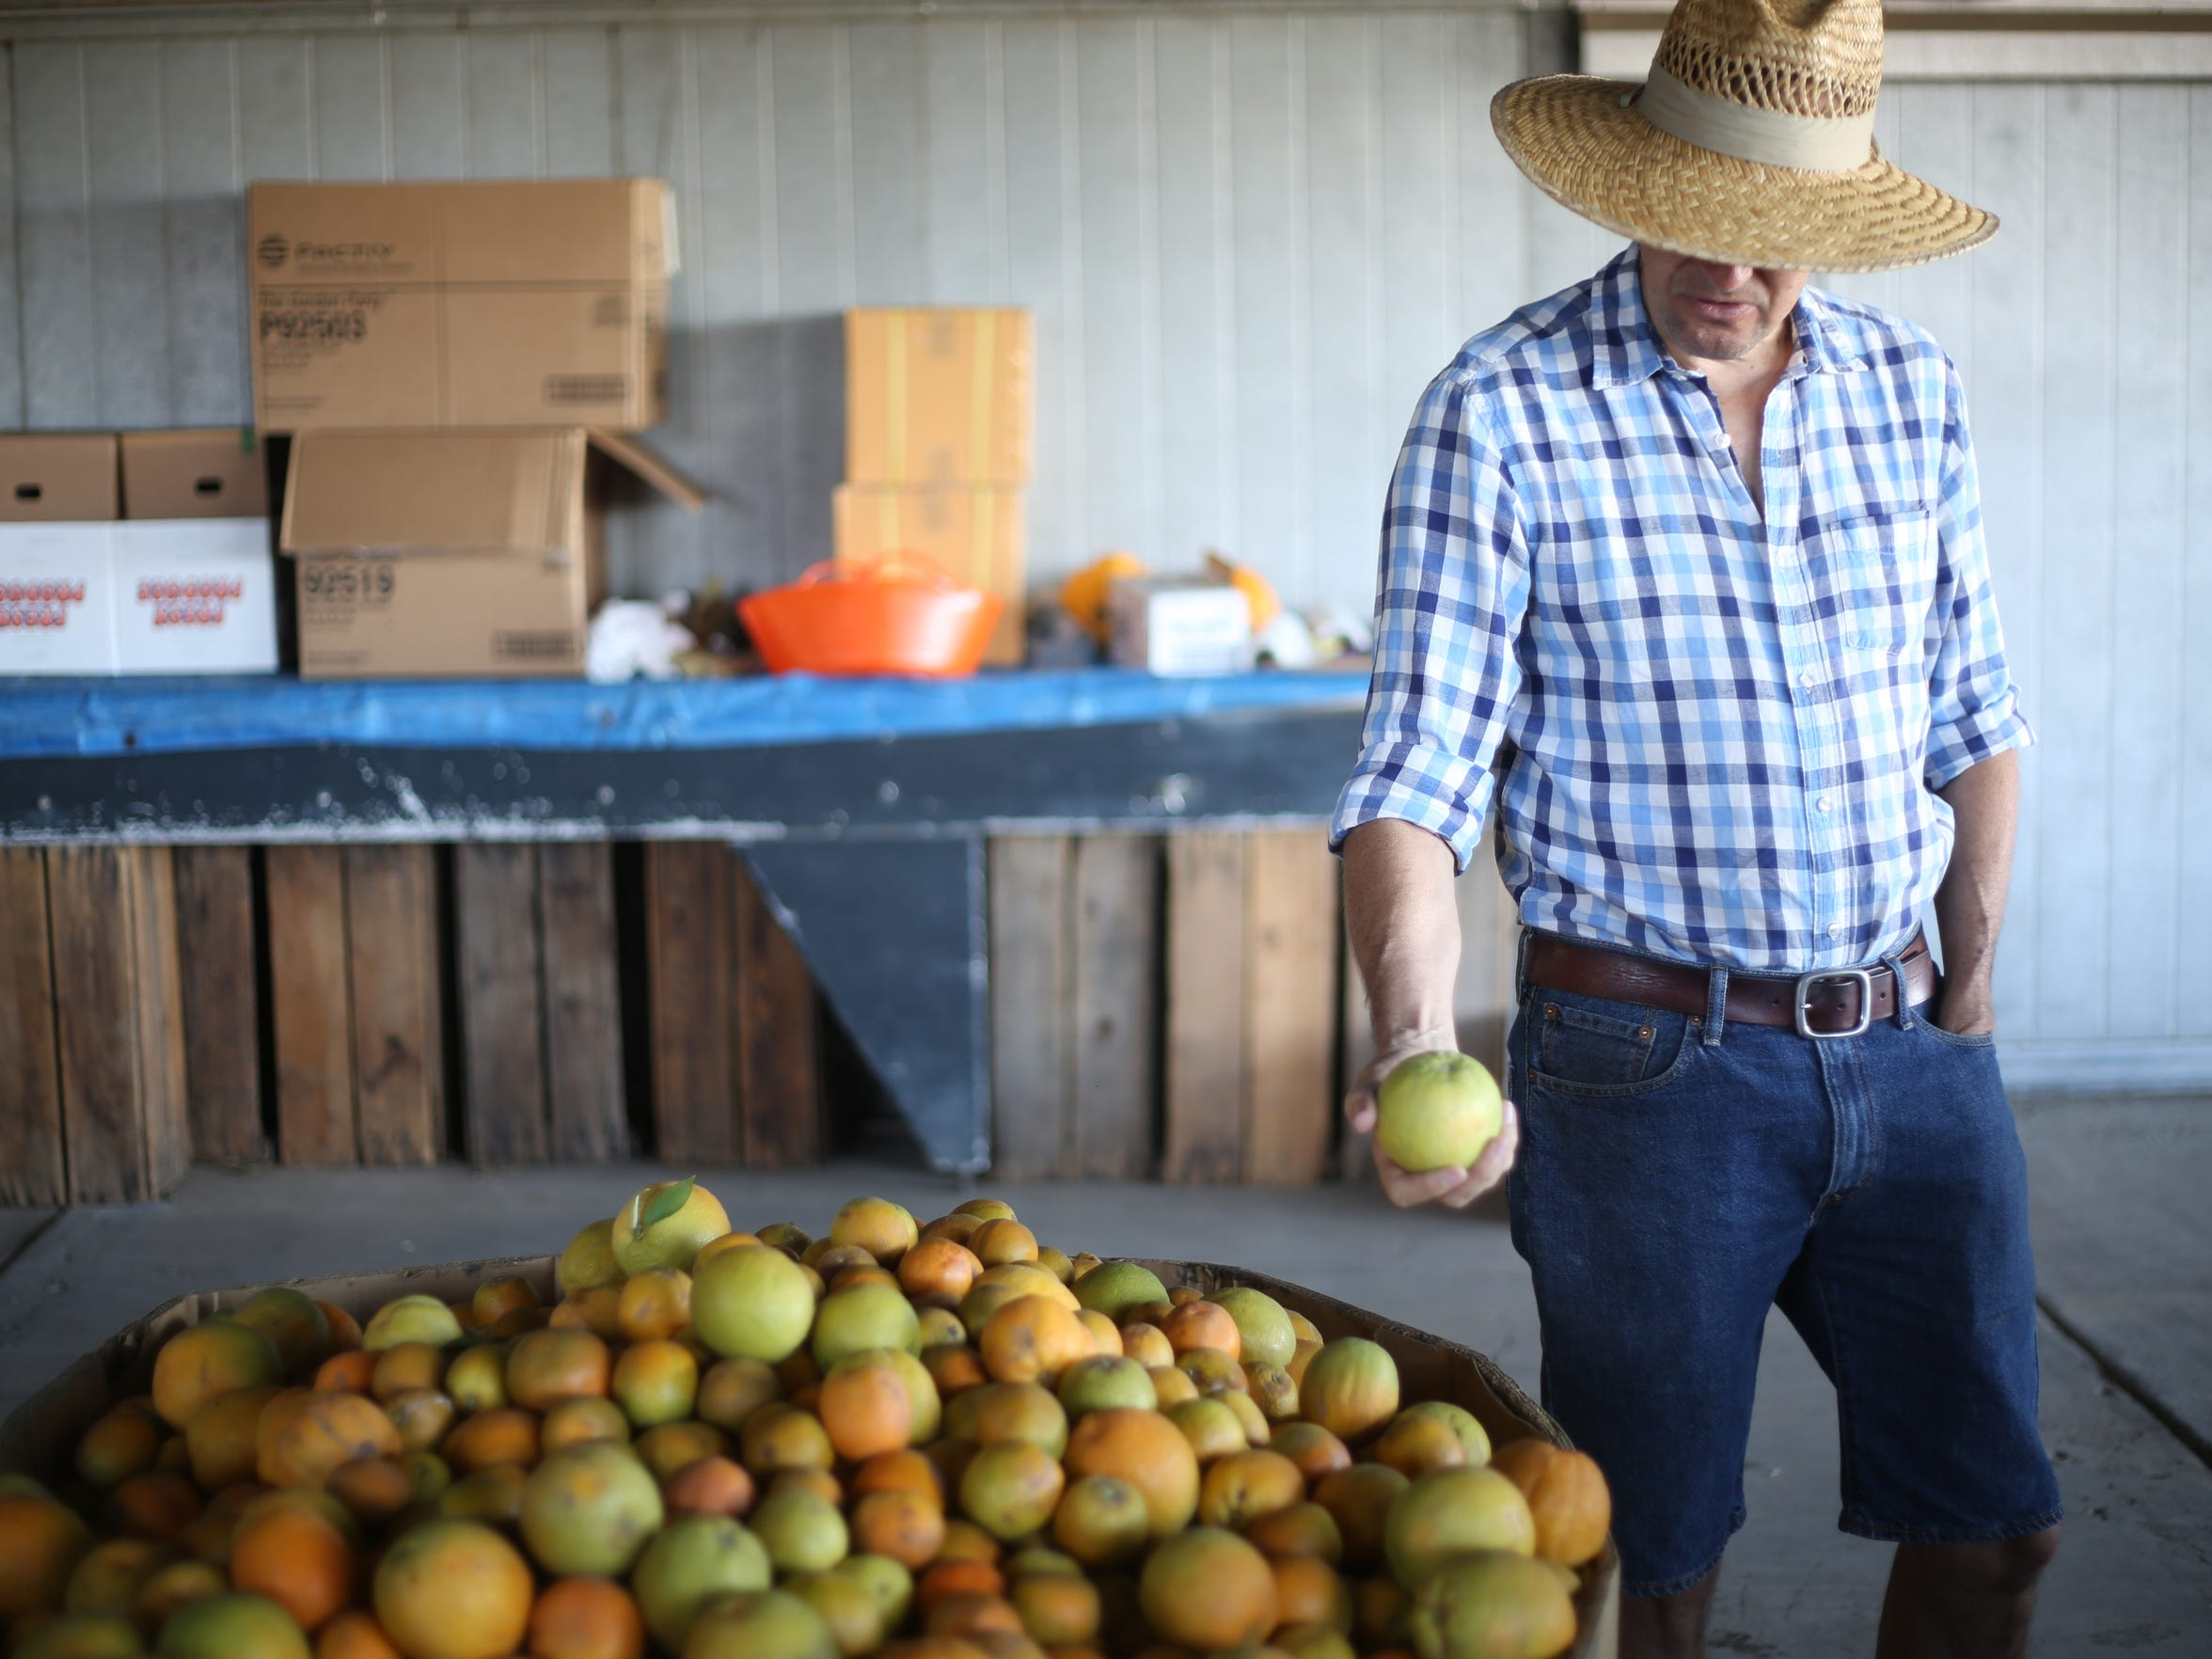 Bob Knight, founder of Old Grove Orange, a farming alliance of 28 local farmers who sell directly to consumers, inspects an orange at his farm in Redlands.